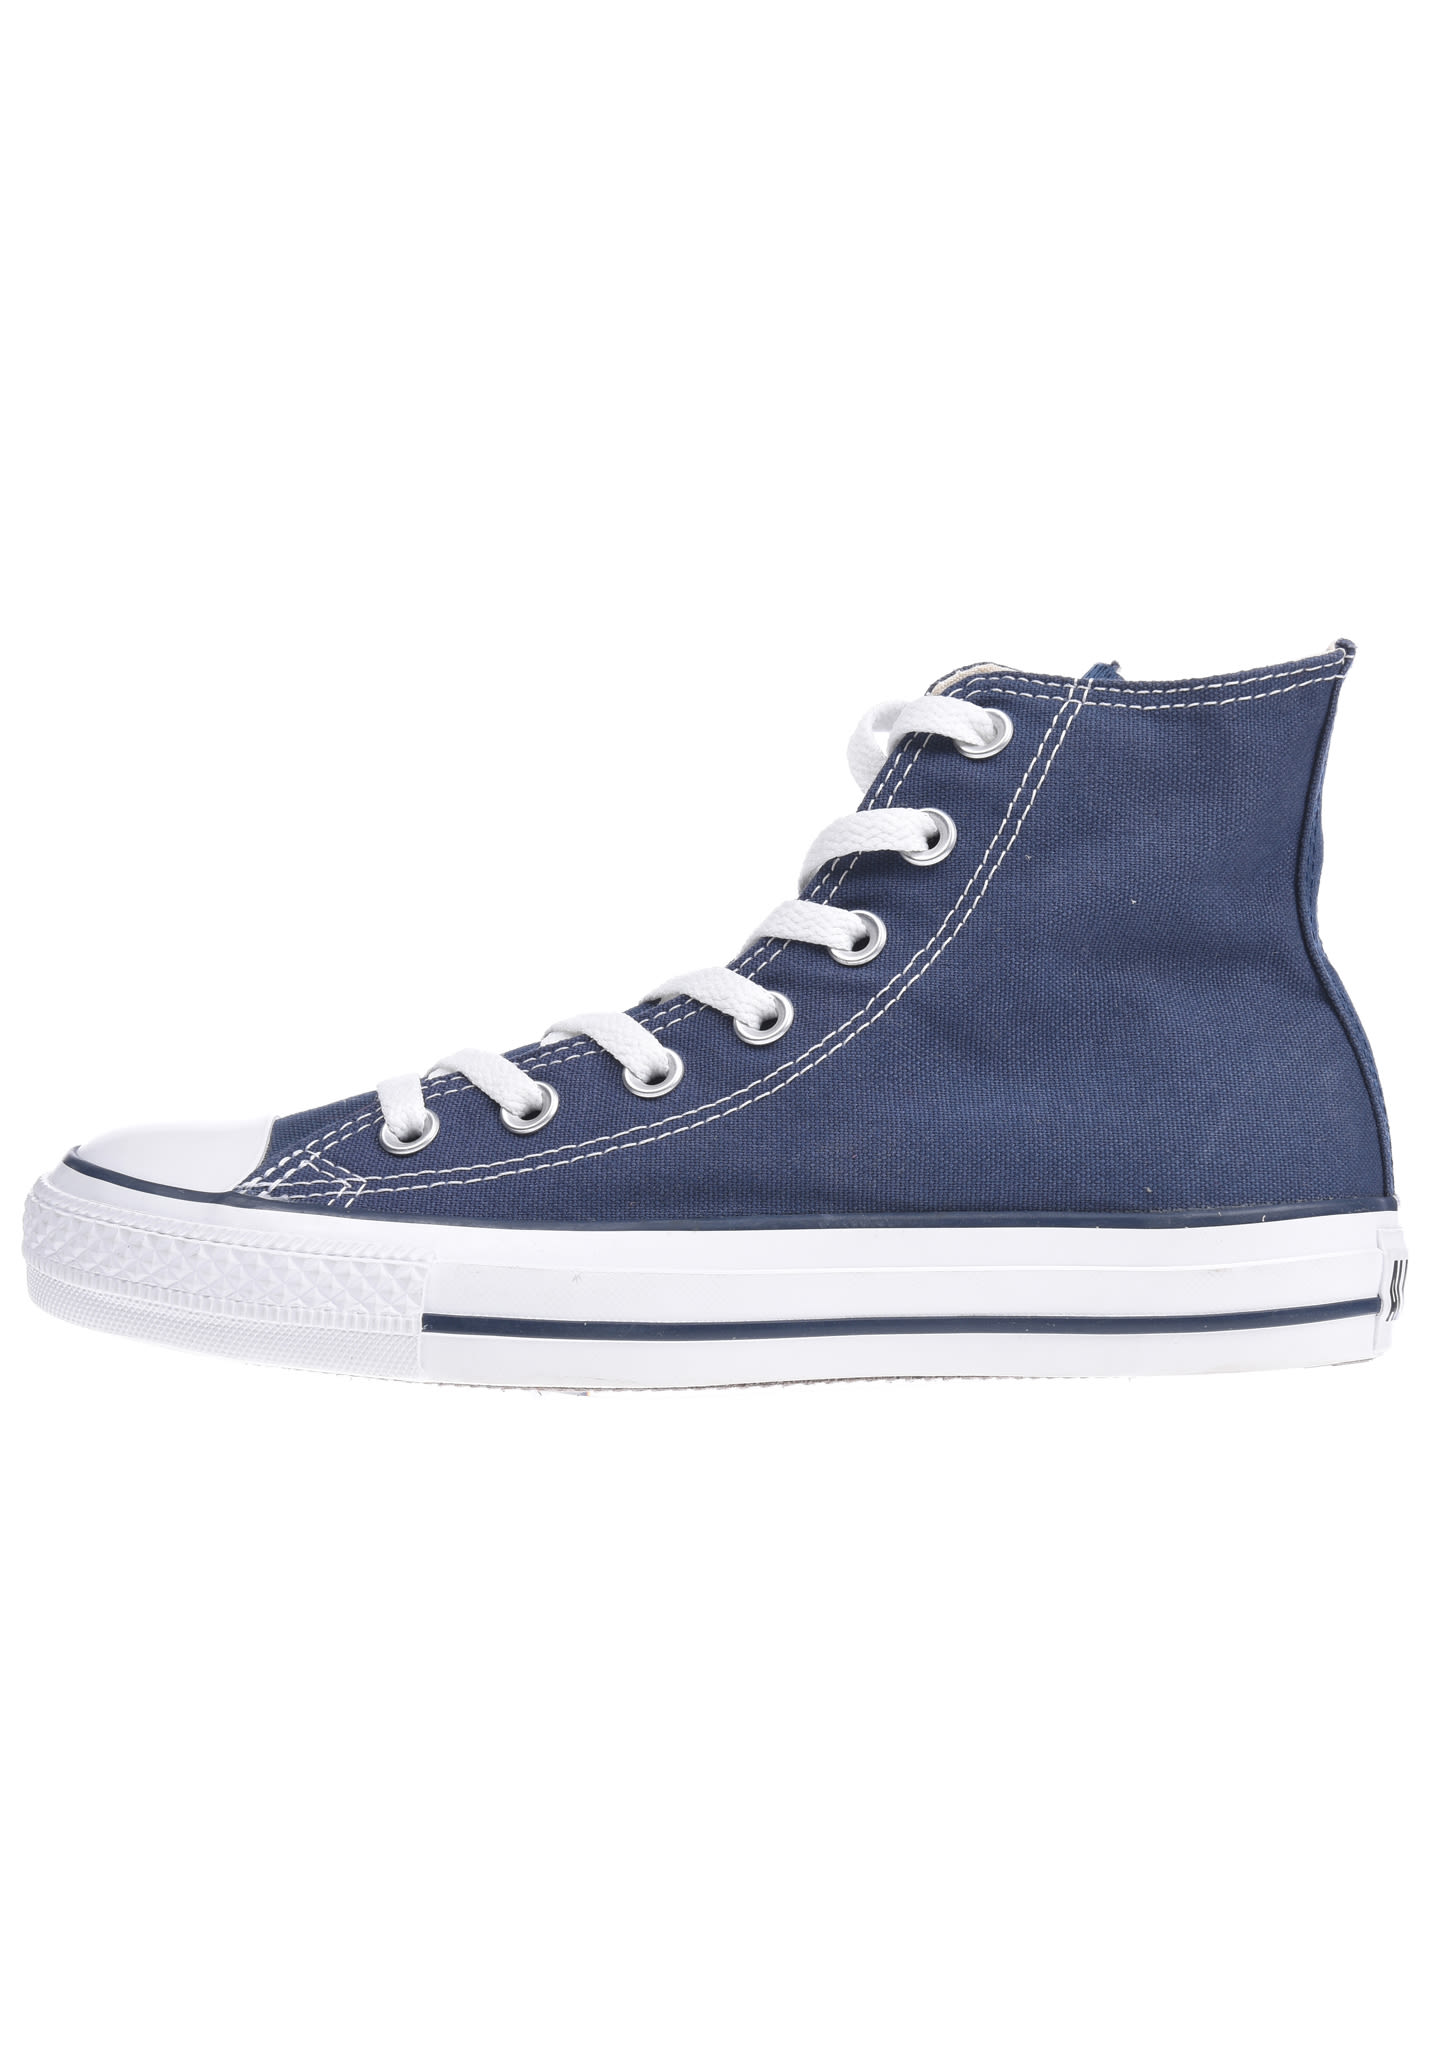 Converse All Star Hi - Sneaker - Blau